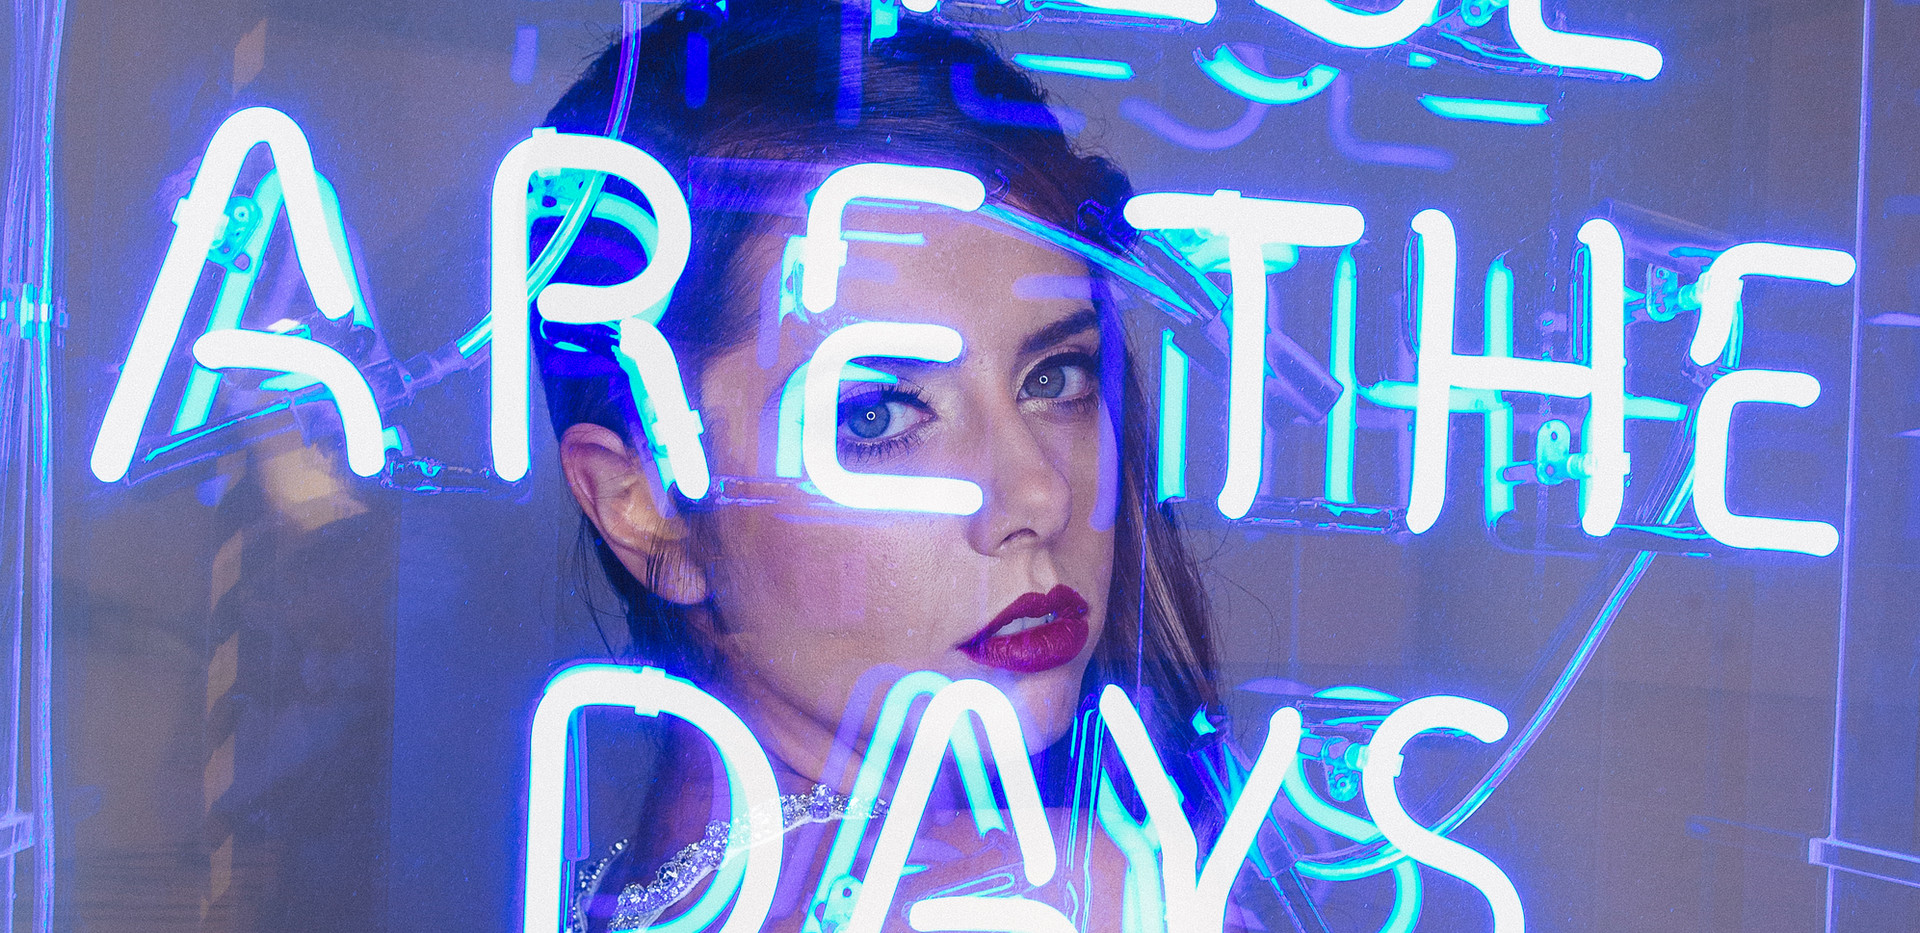 These are the days of our lives neon sign